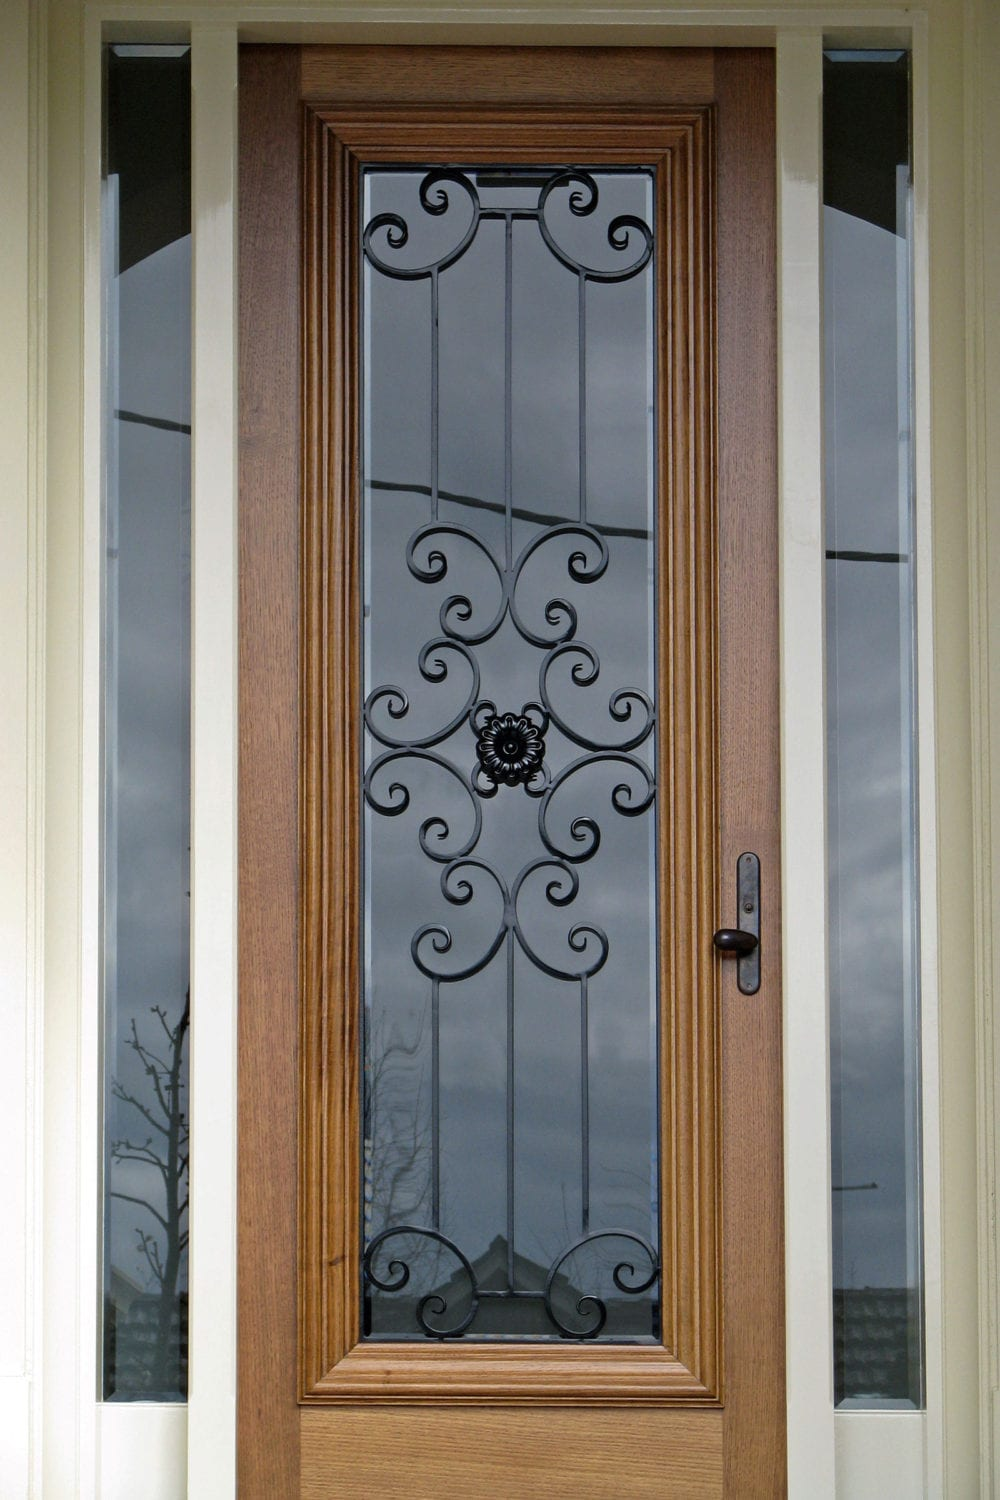 Bayswater security doors 24 hour the superior door company for Door companies